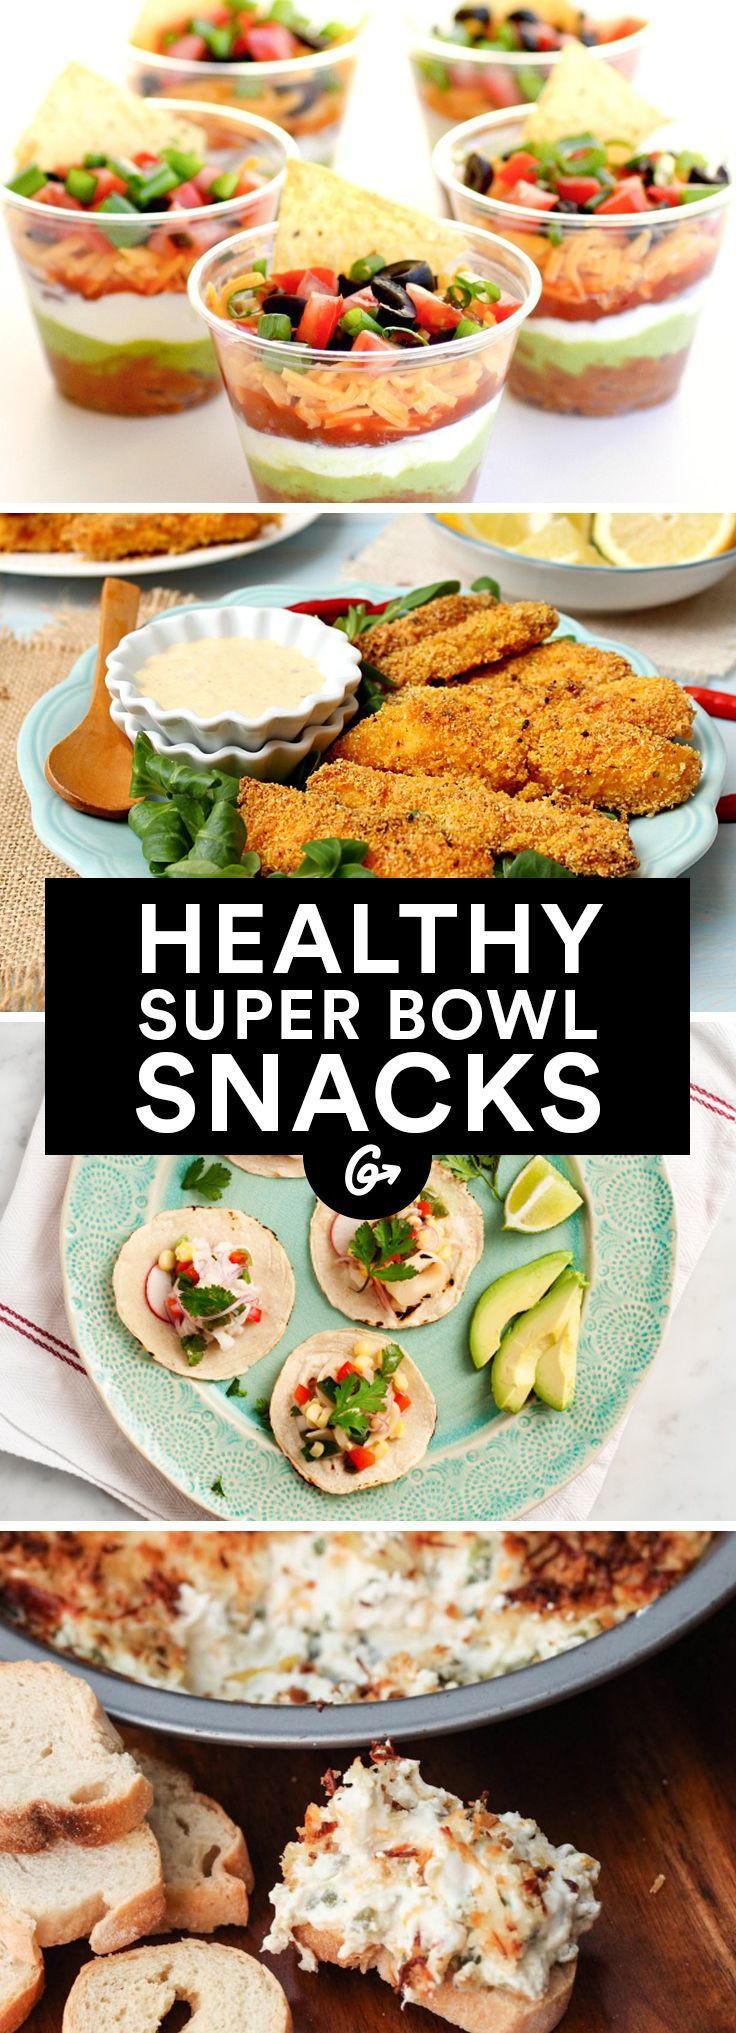 Healthy Super Bowl Appetizers  1000 images about Weight Loss and Healthy Lifestyle Tips